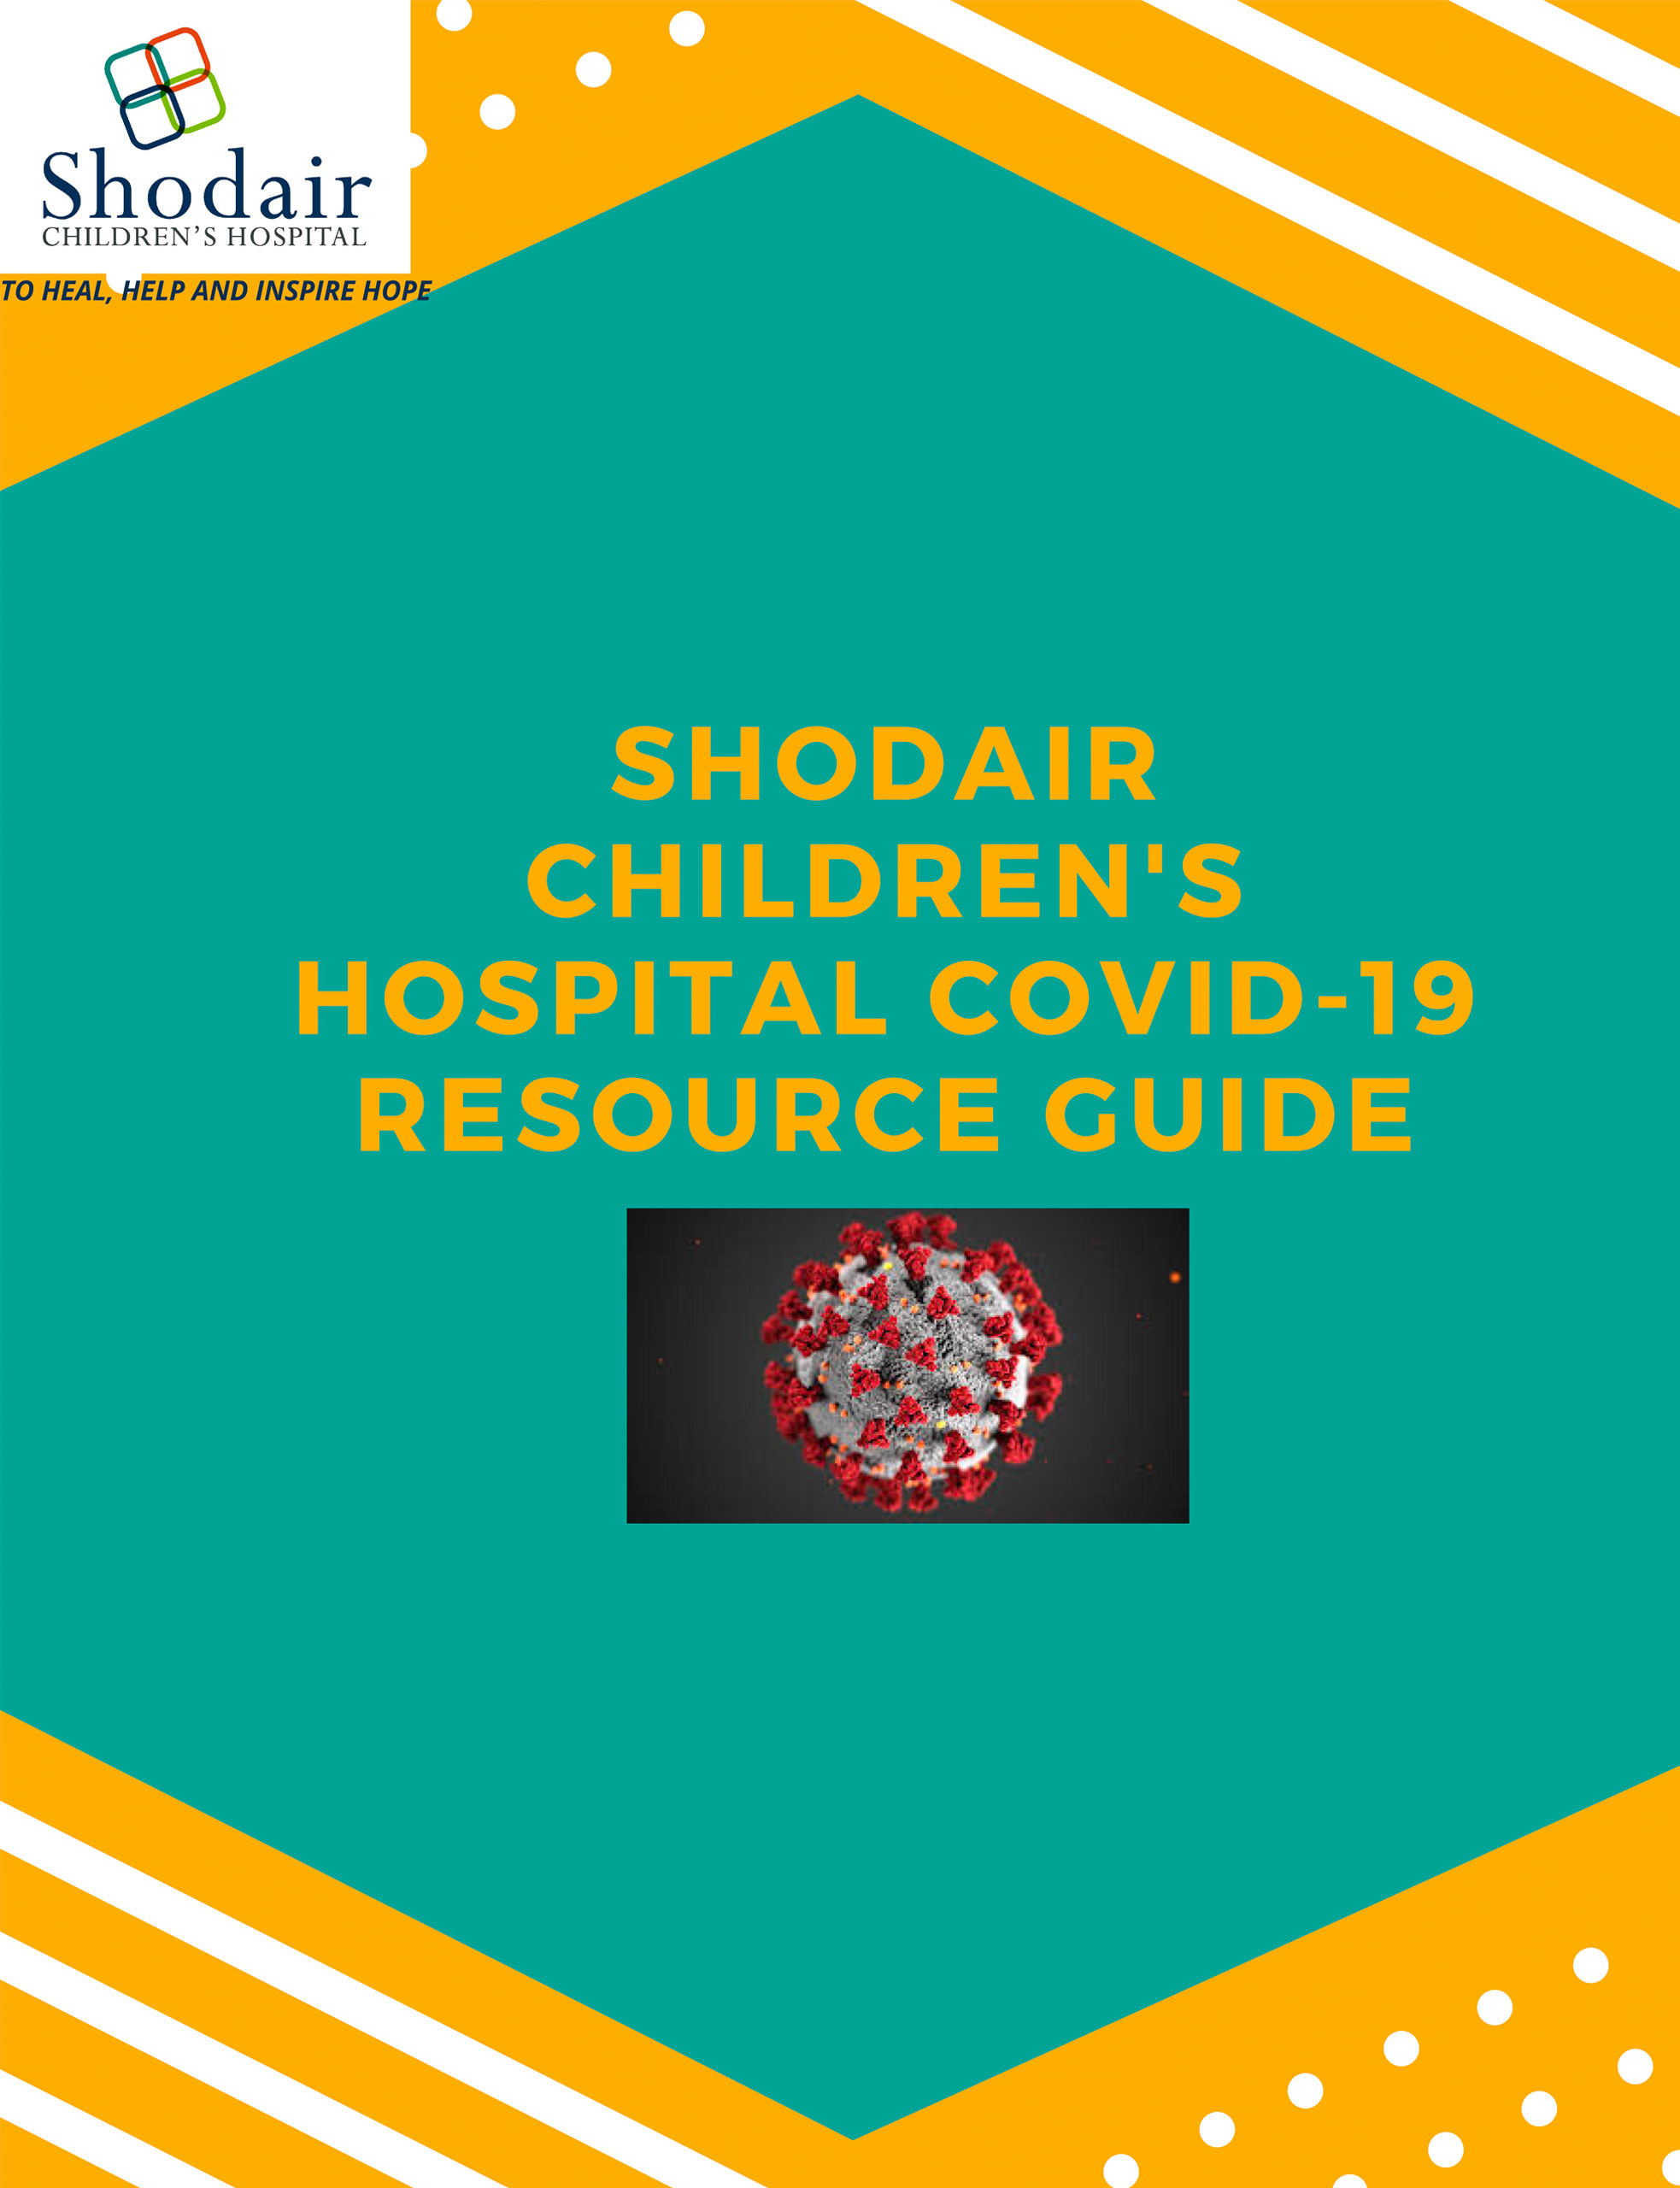 Shodair's Covid-19 Resource Guide